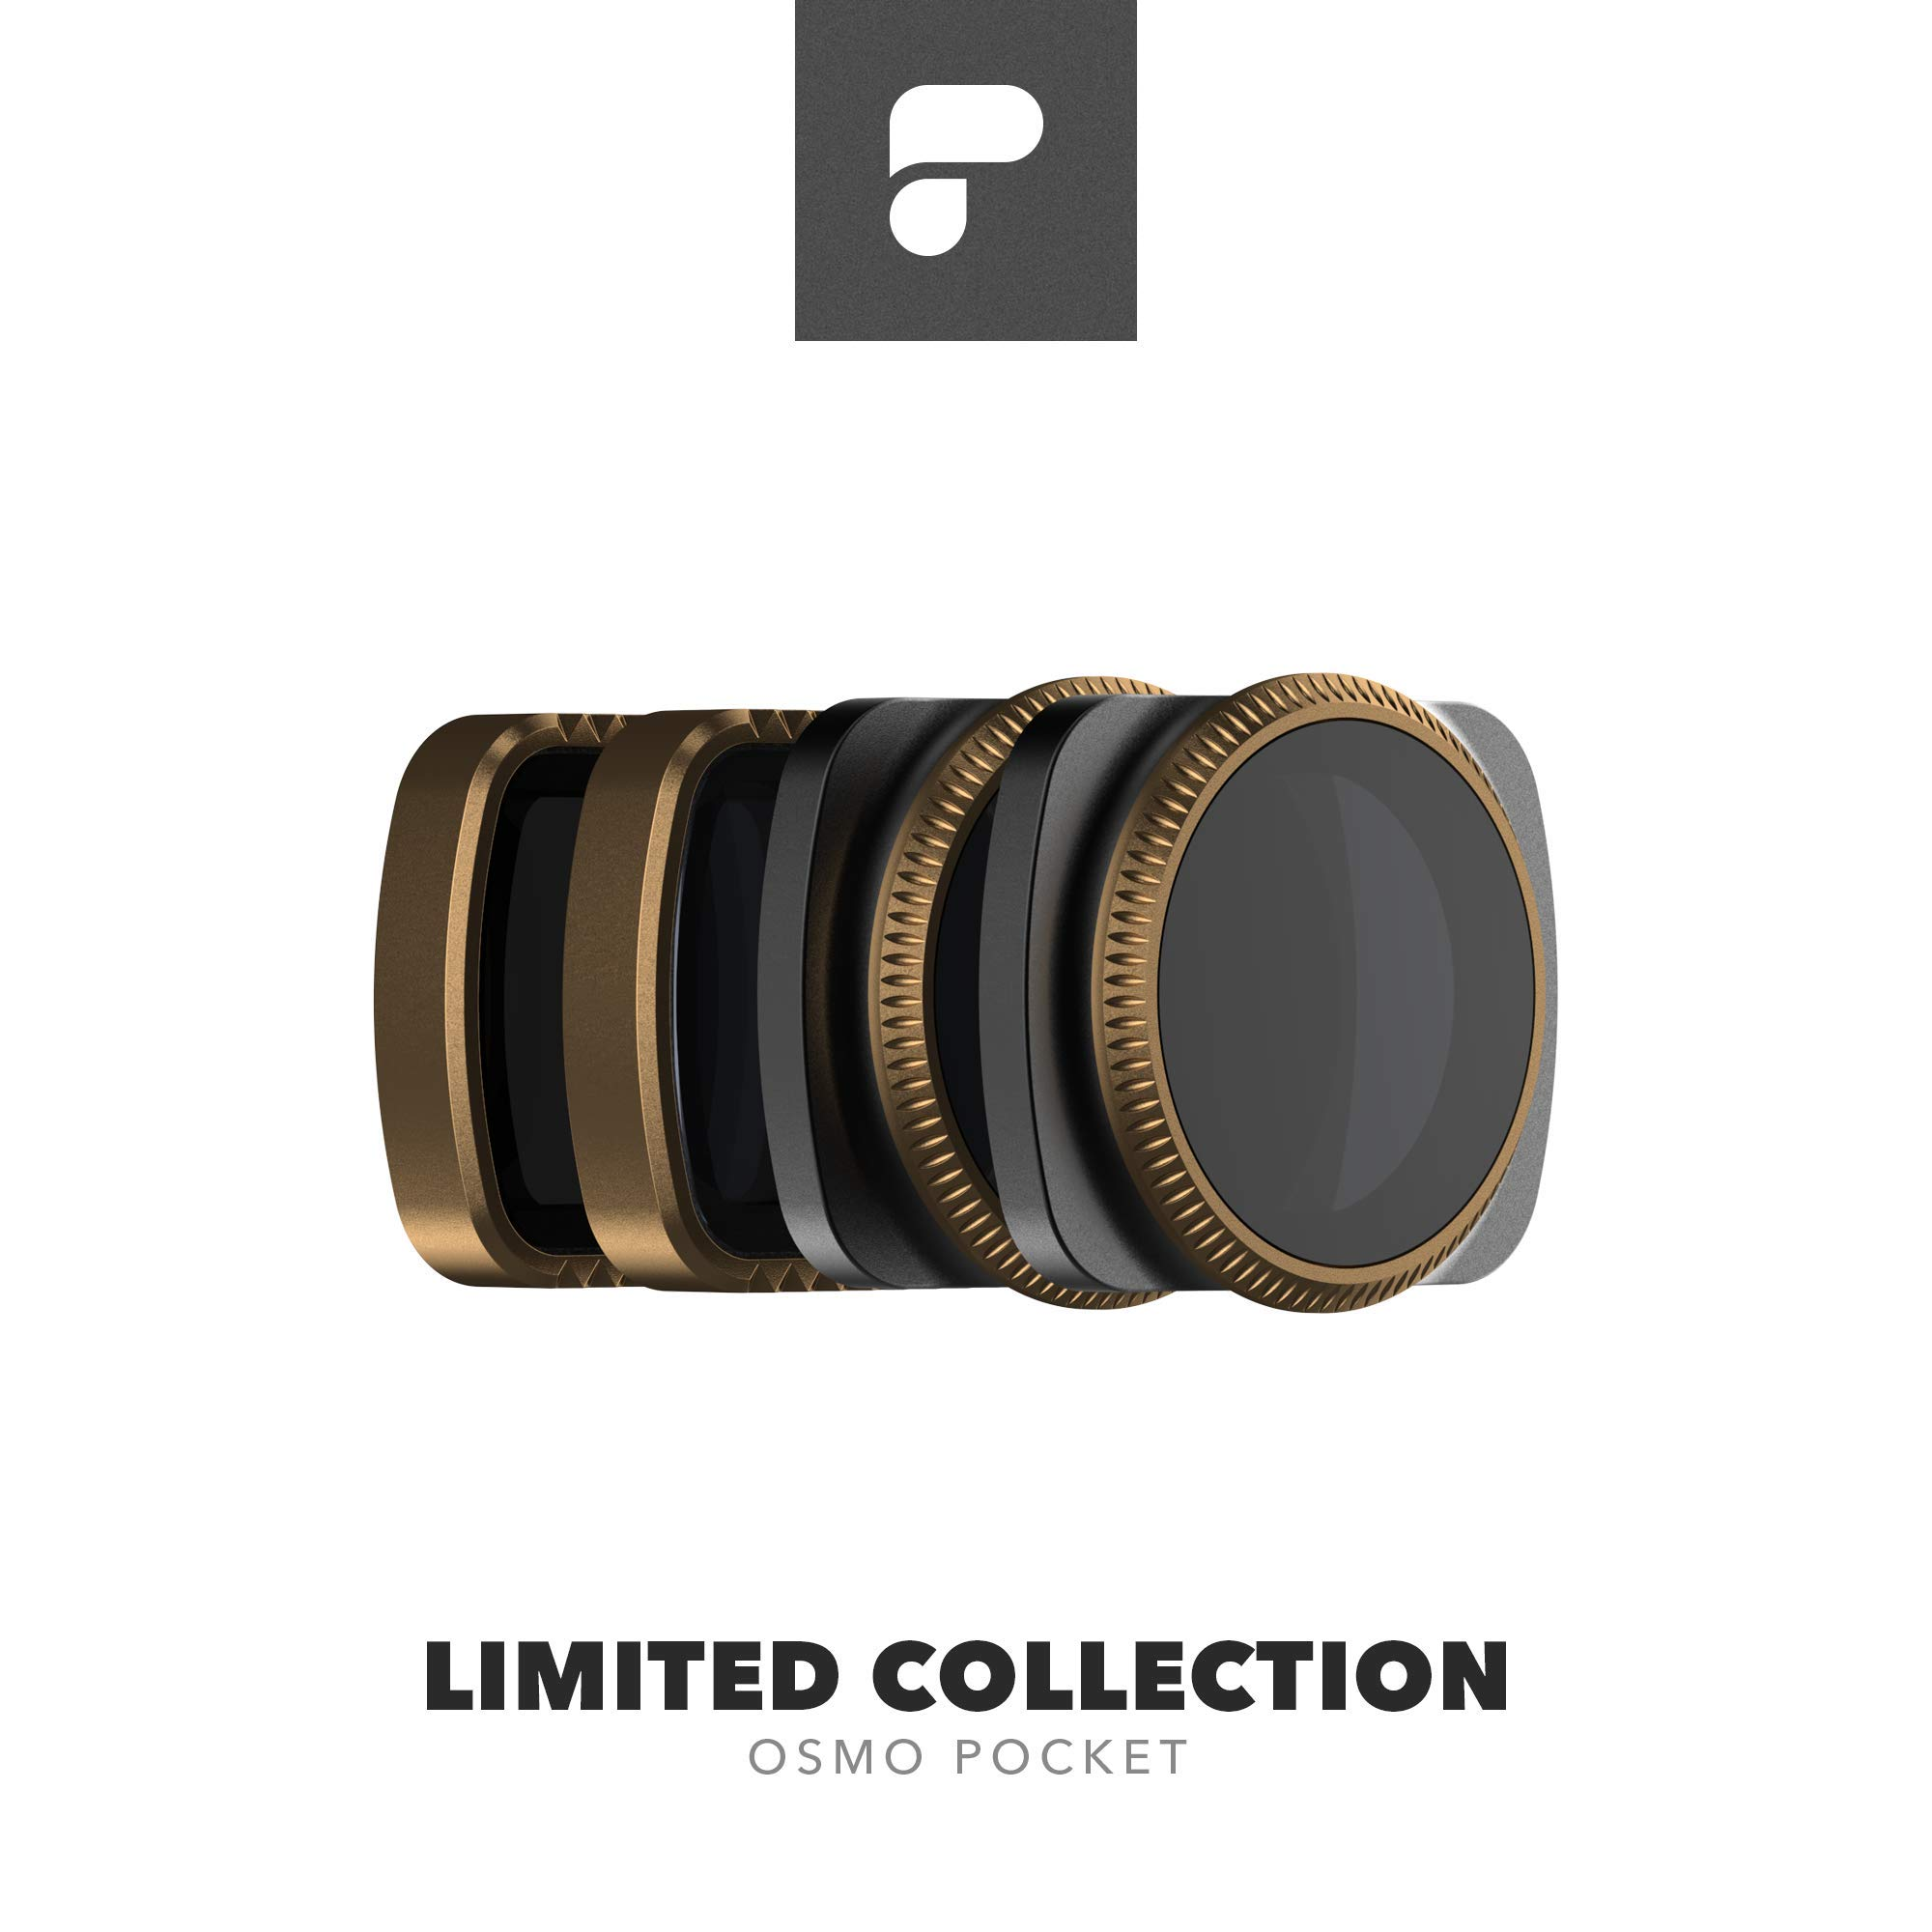 PolarPro Cinema Series Filter 4-Pack - Limited Collection for Osmo Pocket by PolarPro